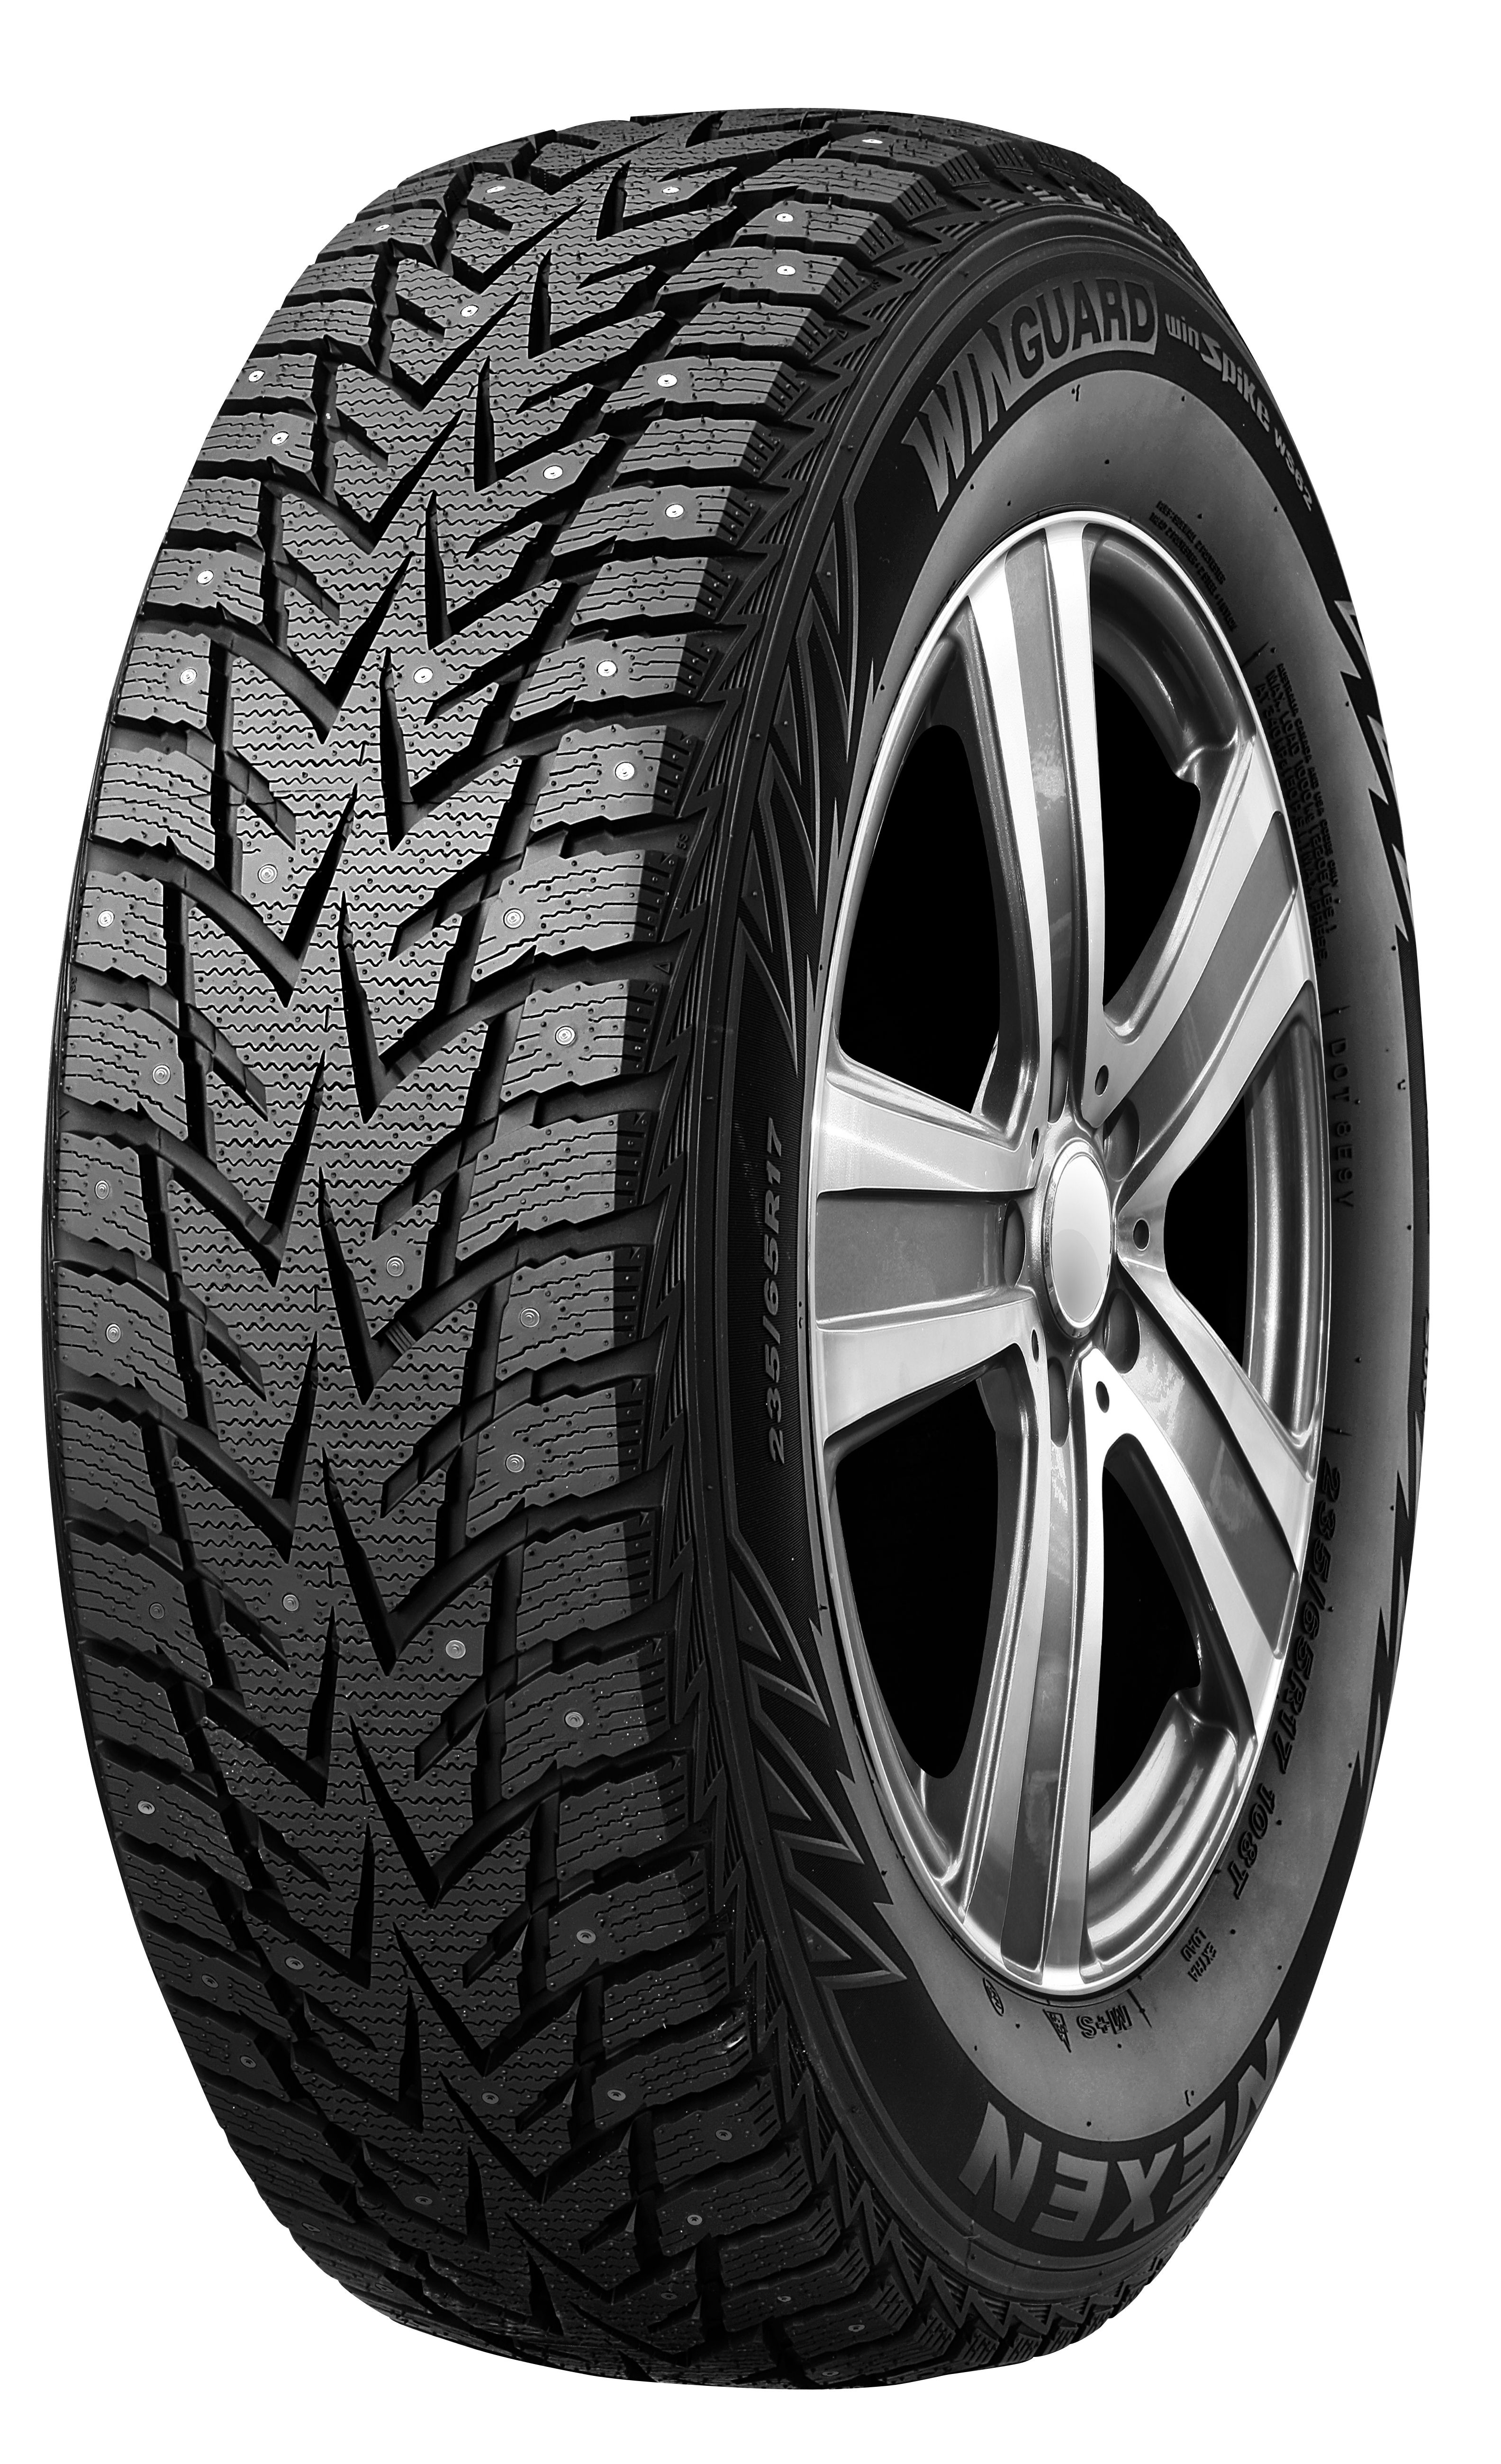 Nexen Winguard Spike WH62 SUV 225/65 R17 106T